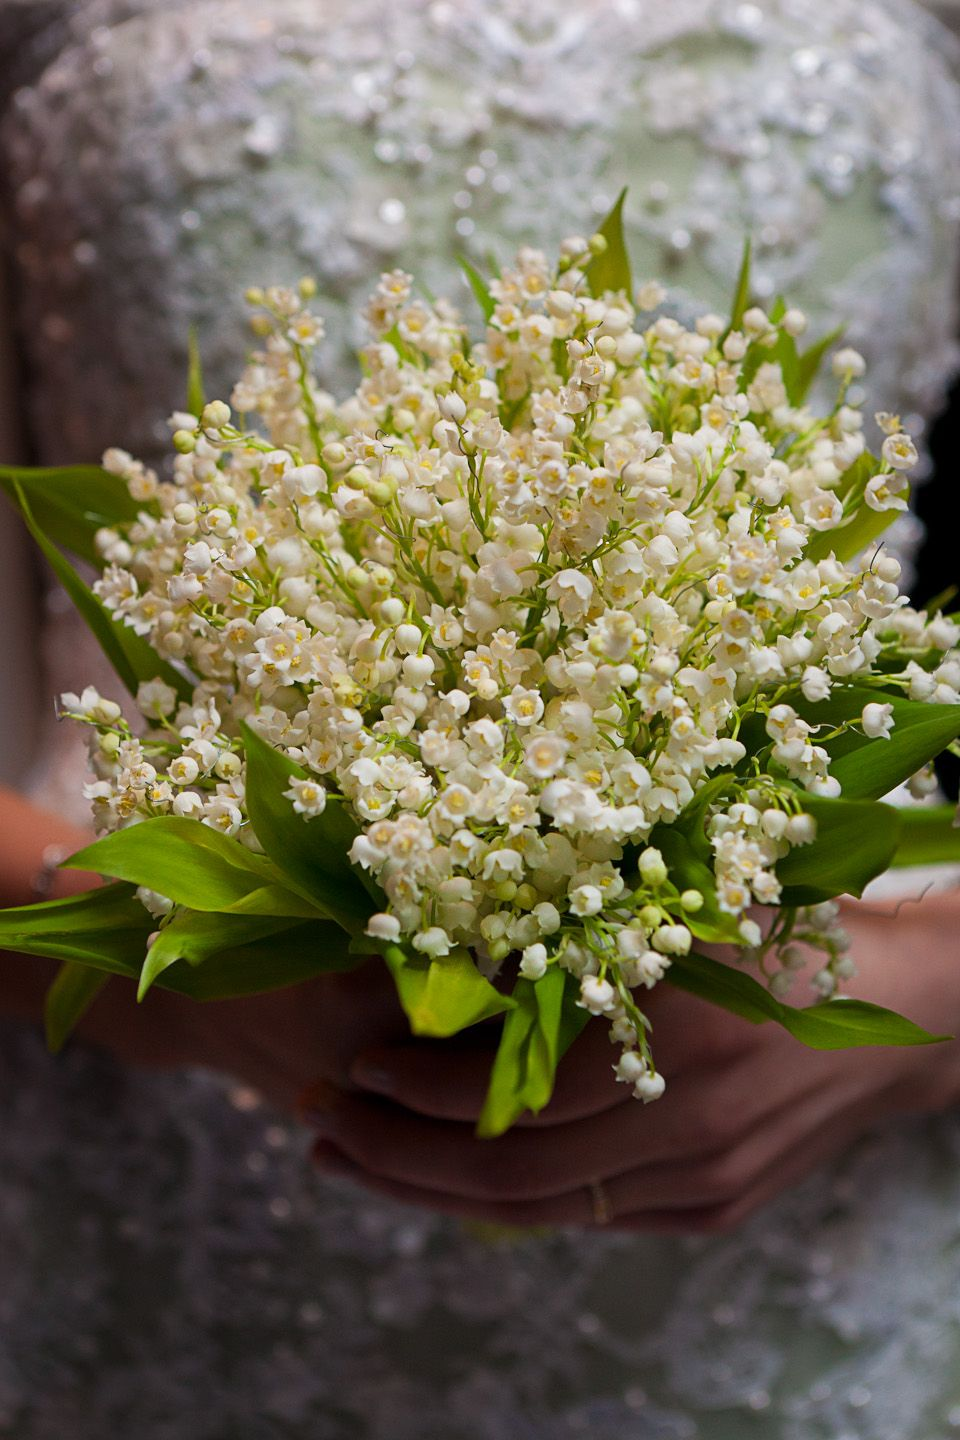 Lily of the Valley Bouquet(Niemierko) a flower with such